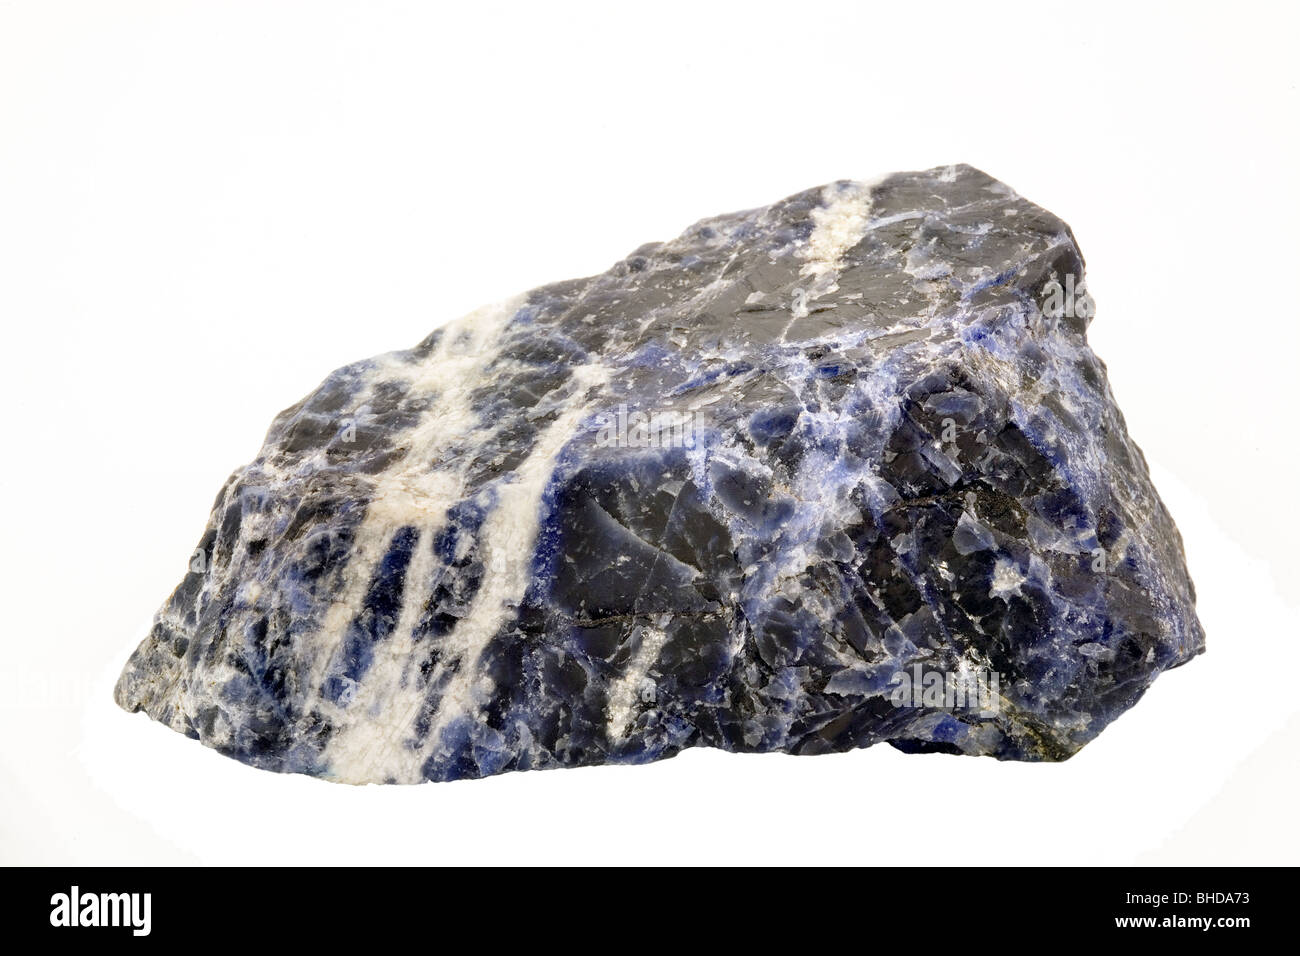 Sodalite Photo Stock